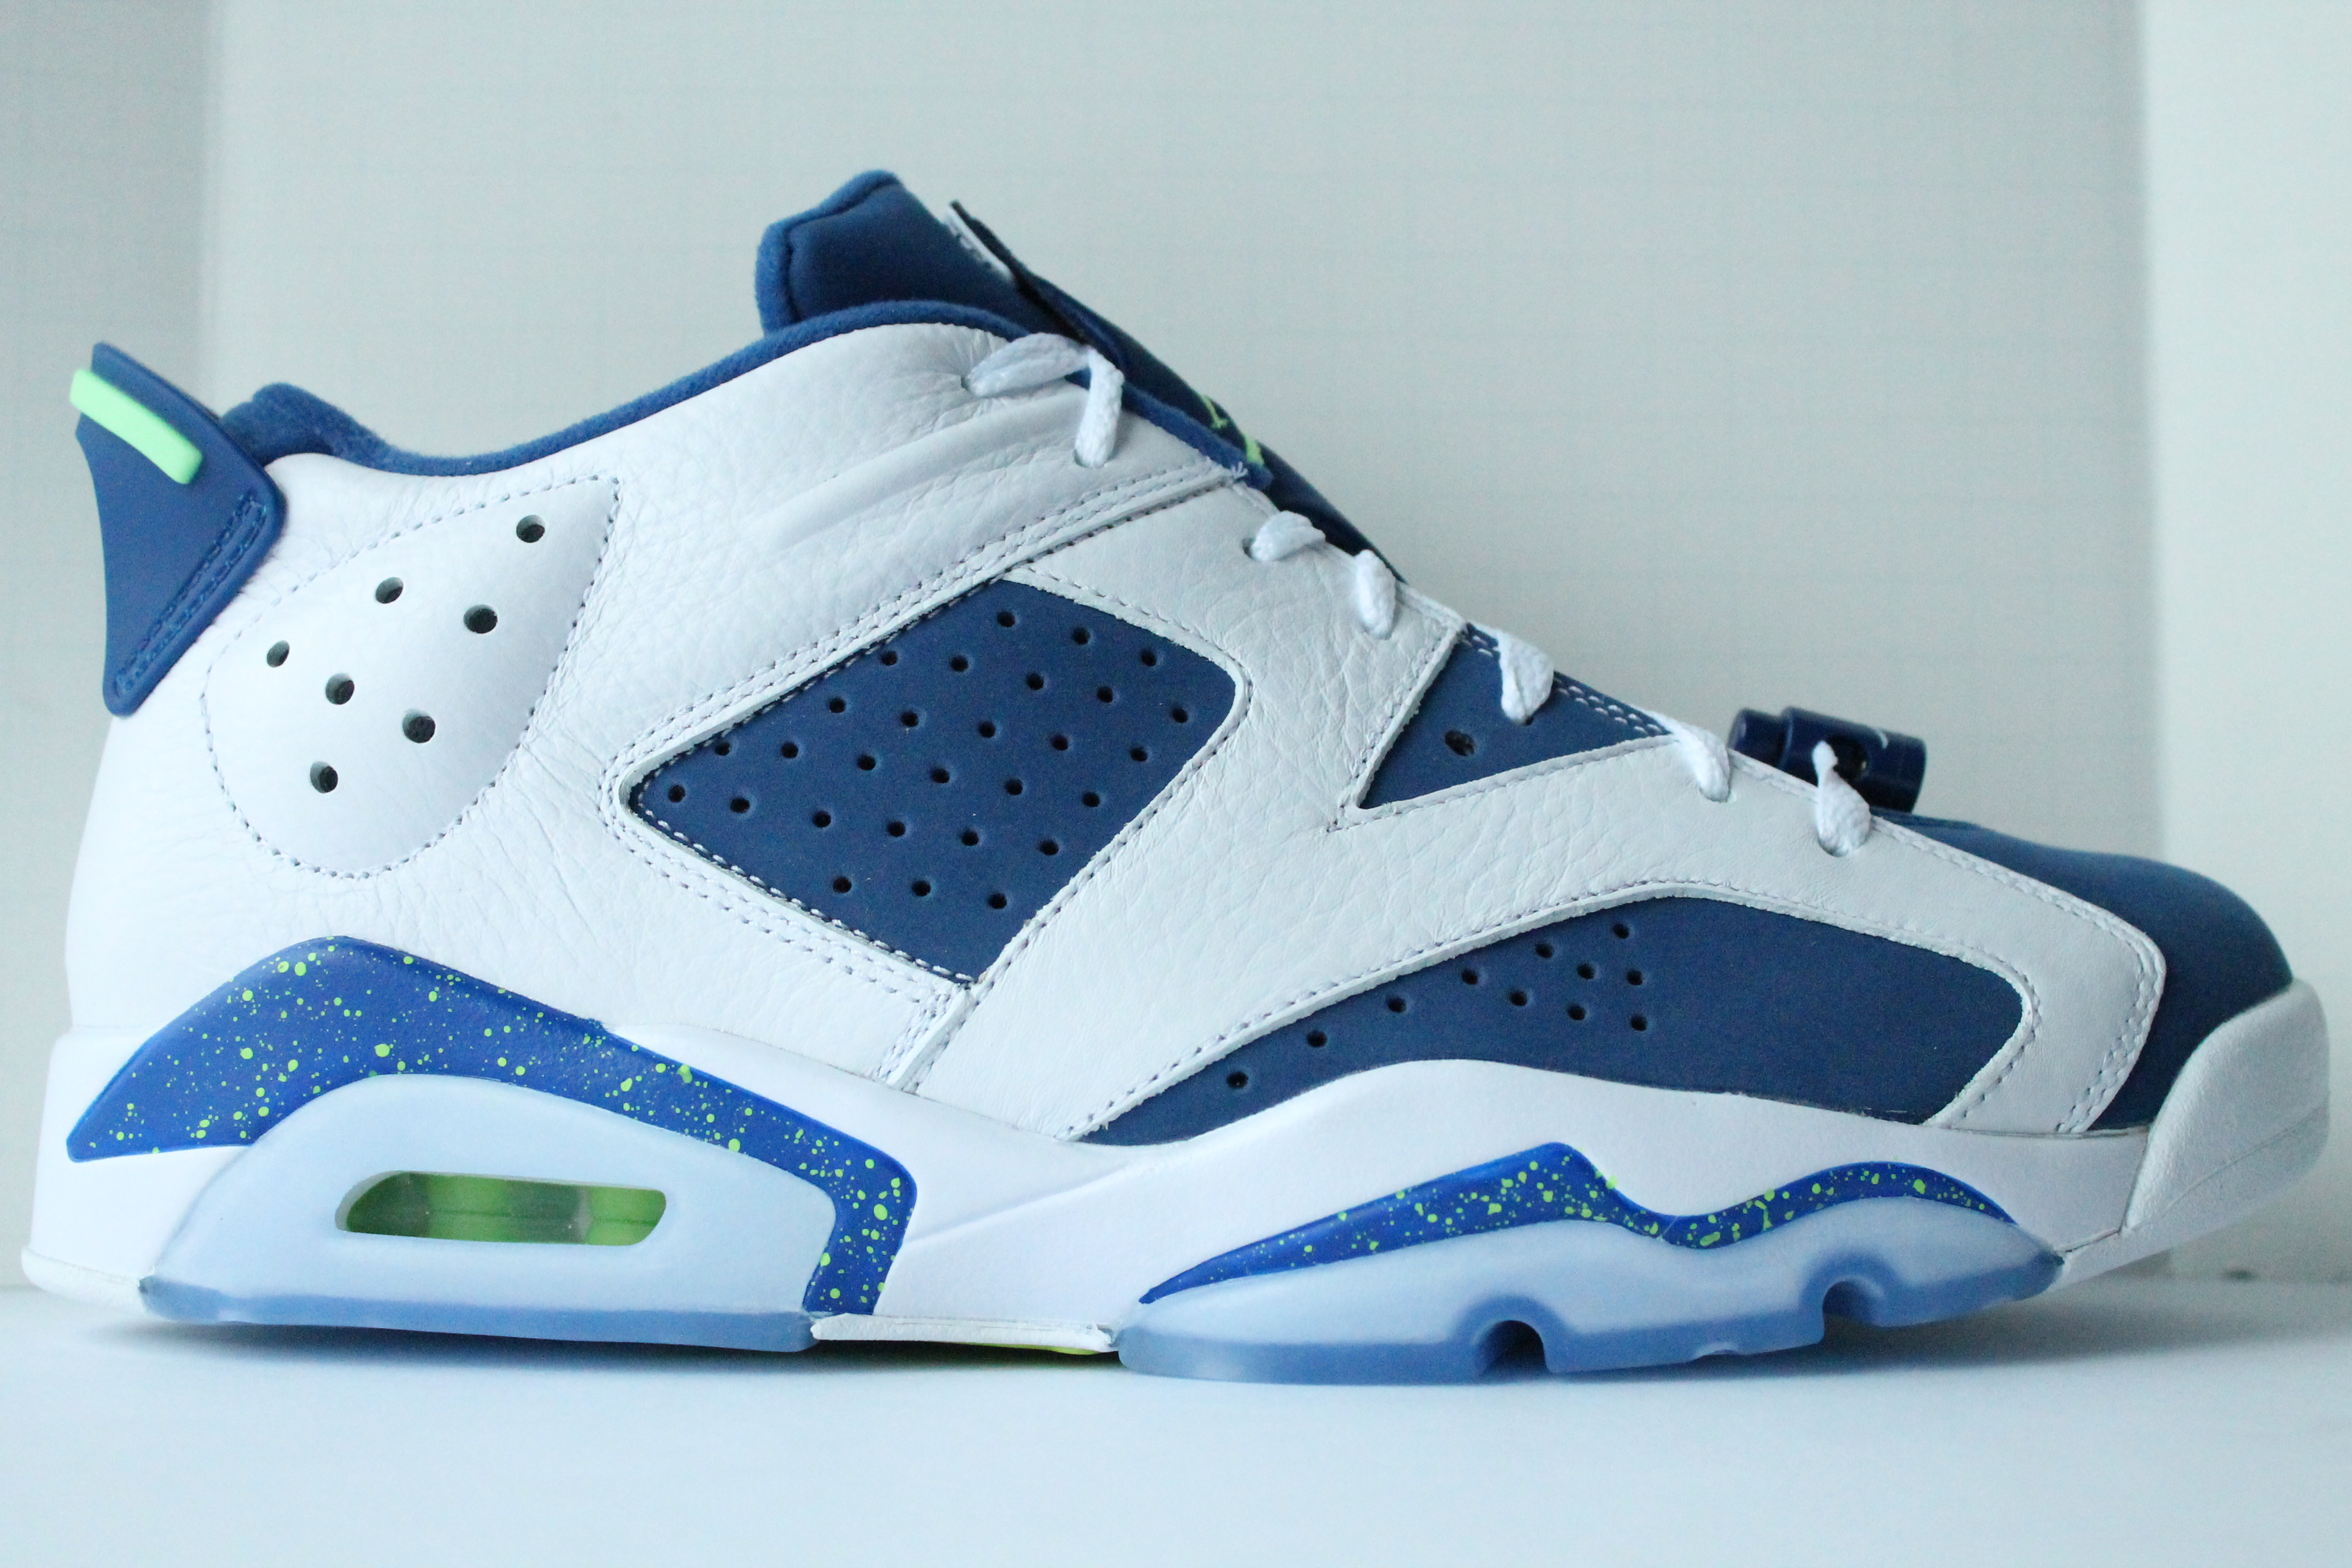 huge selection of a7a2c 60a96 Air Jordan 6 Retro Low - Insignia Blue  Ghost Green